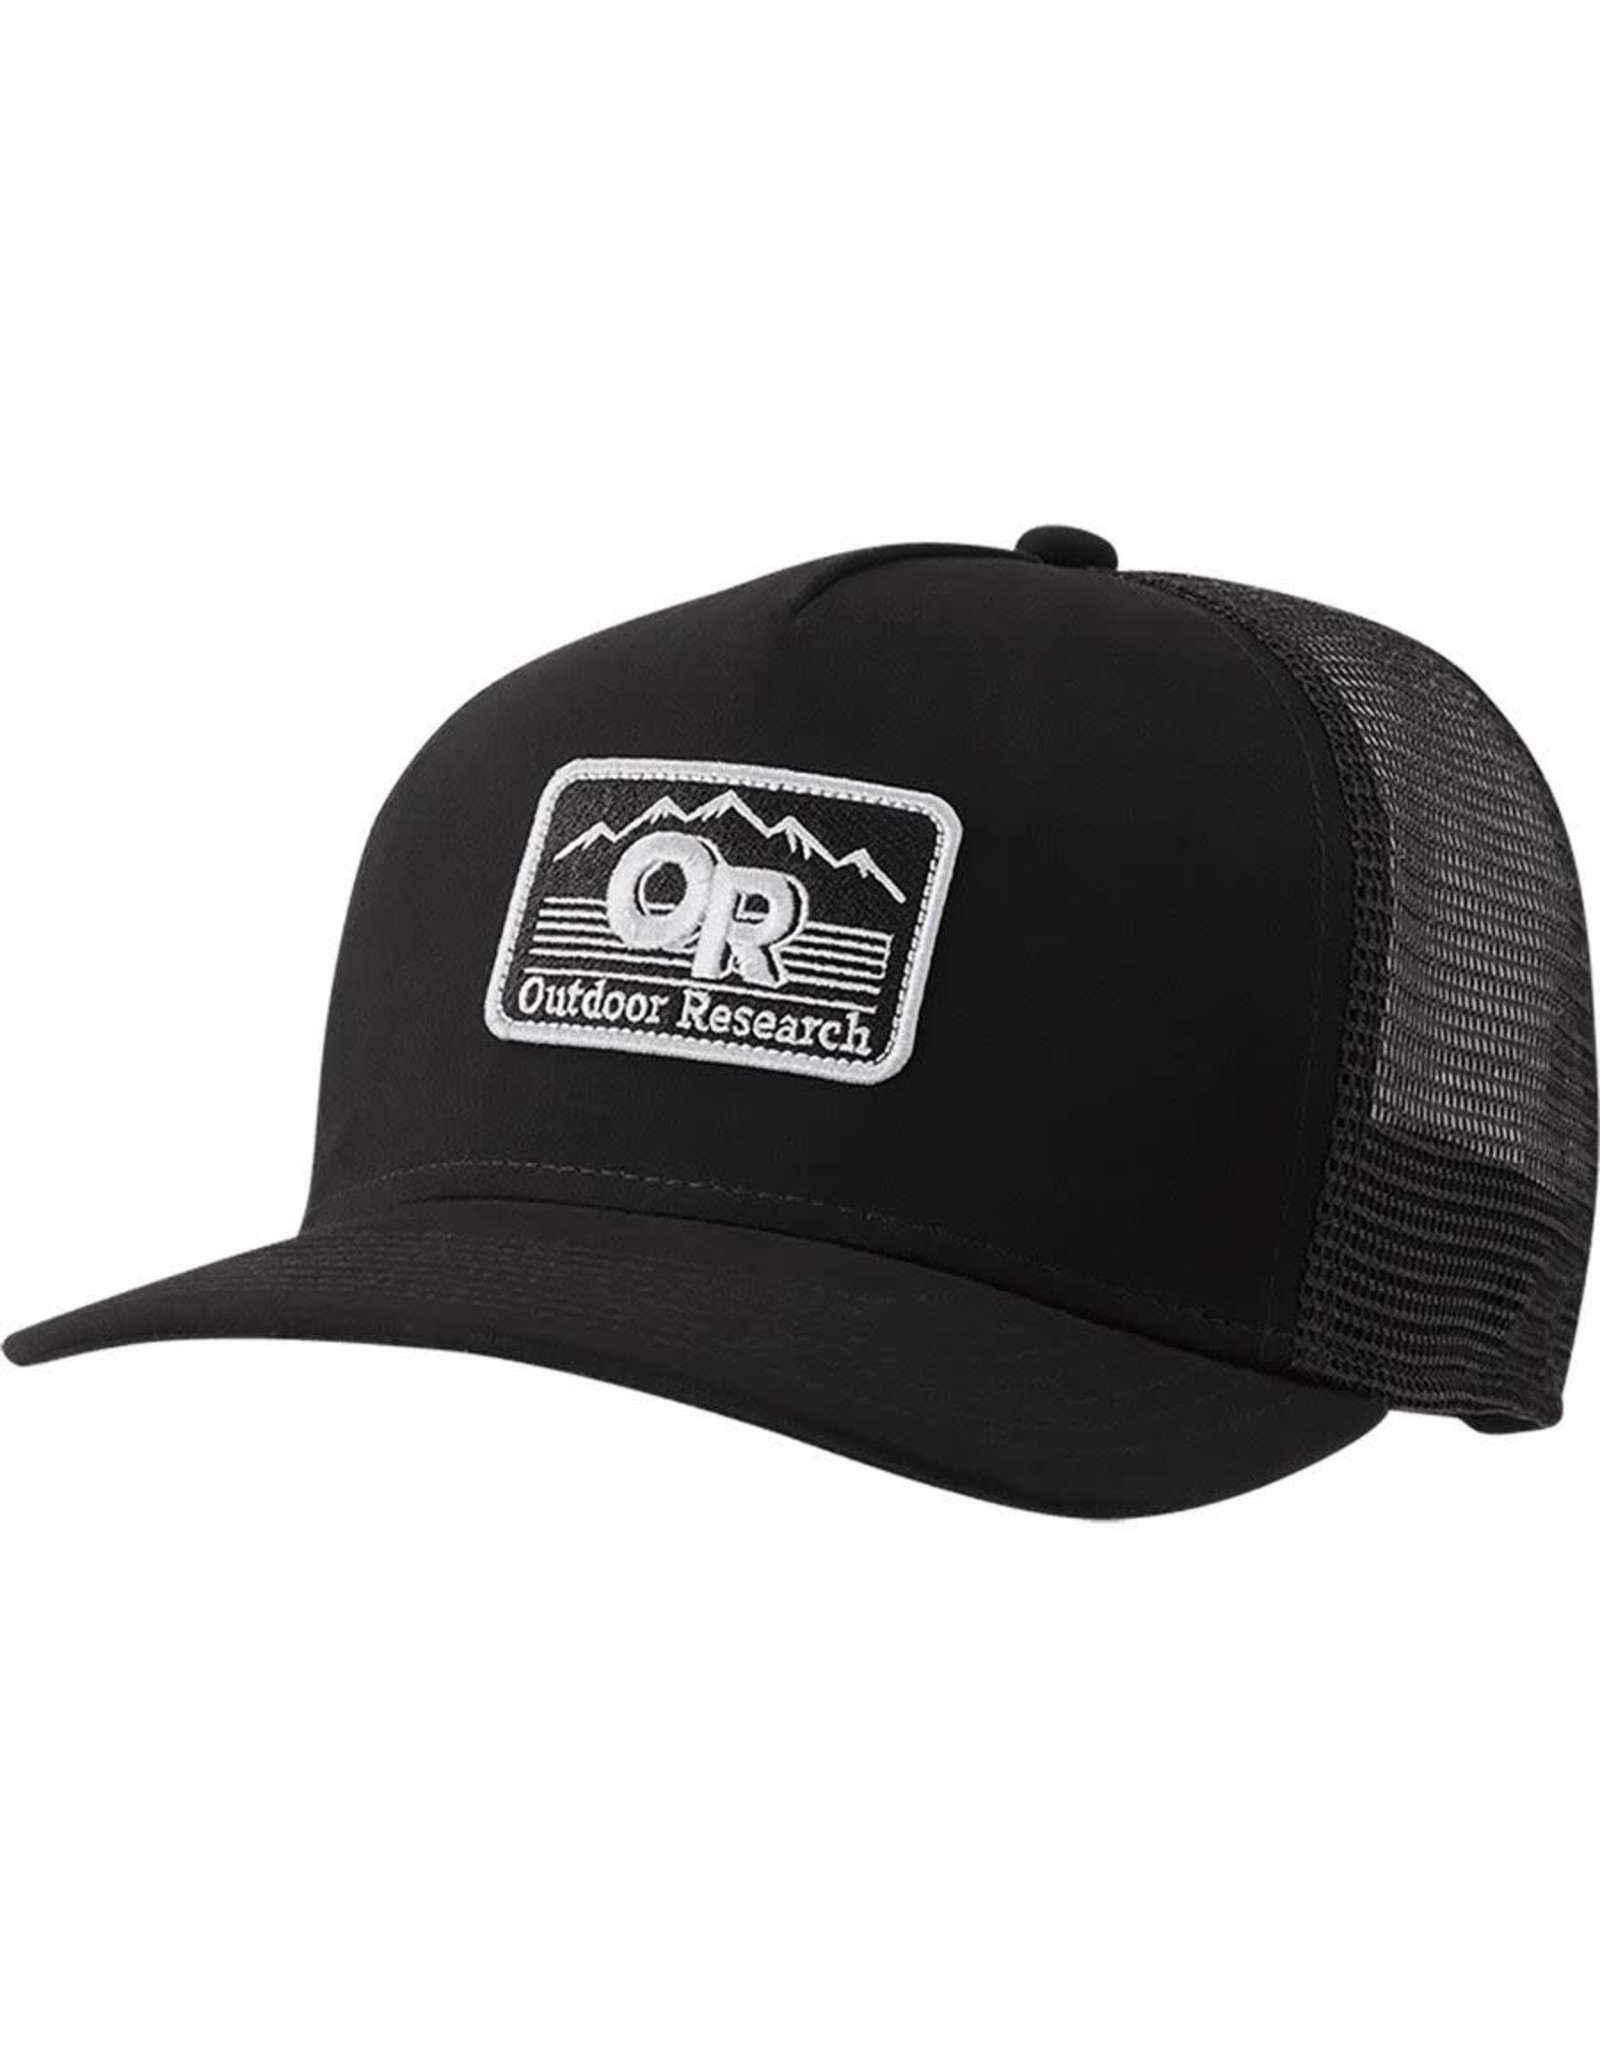 Outdoor Research Outdoor Research Advocate Trucker Cap Black